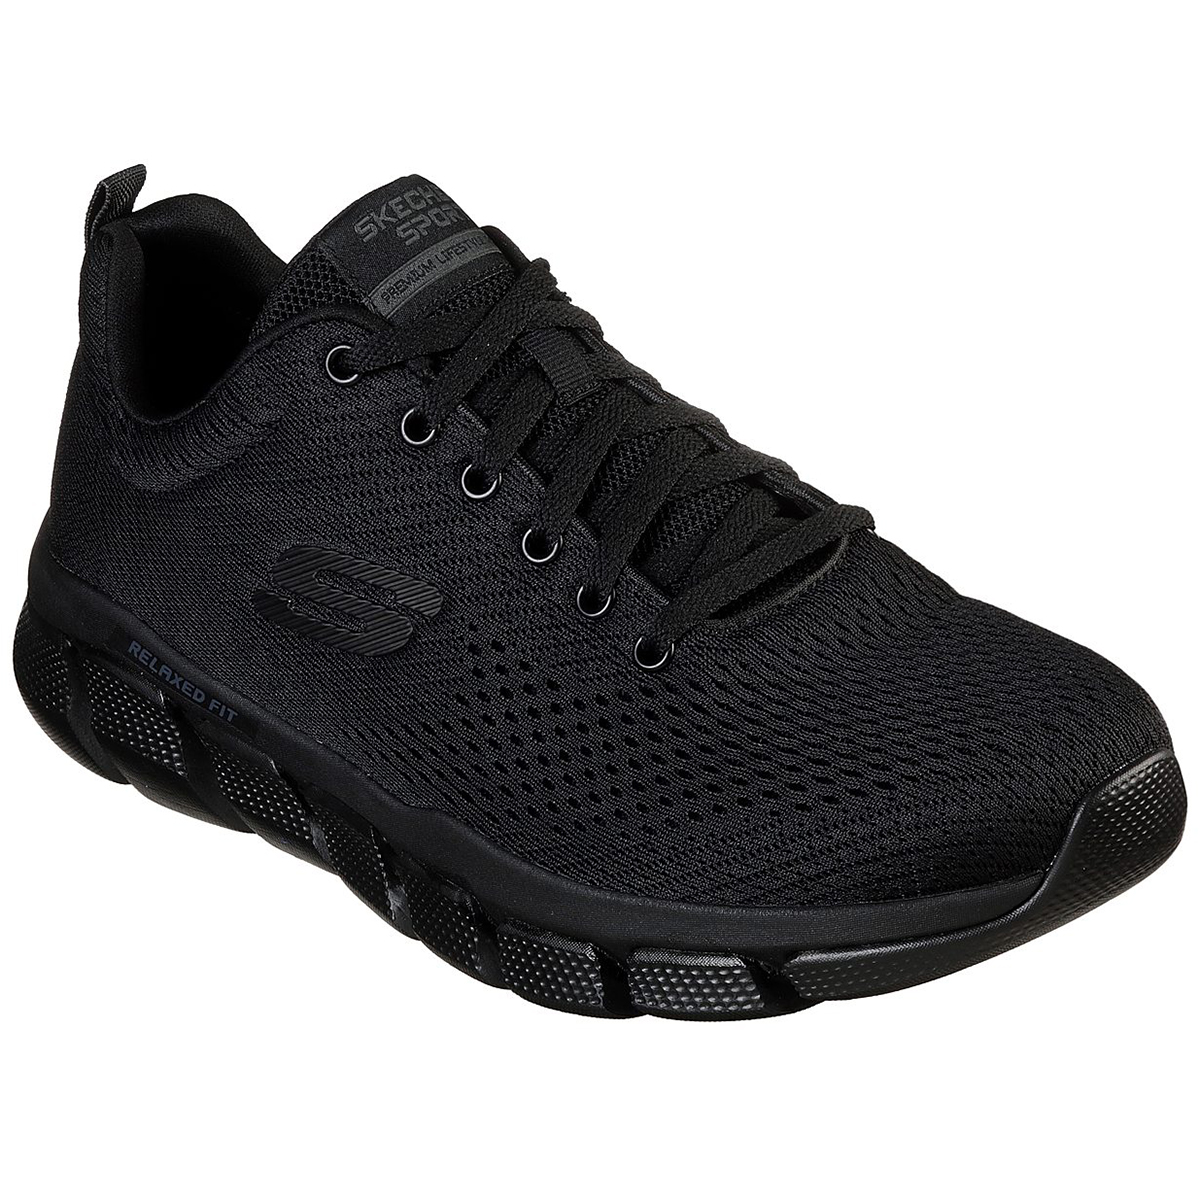 Skechers Men's Relaxed Fit Skech-Flex 3.0 Verko Lace Up Sneakers, Wide - Black, 12